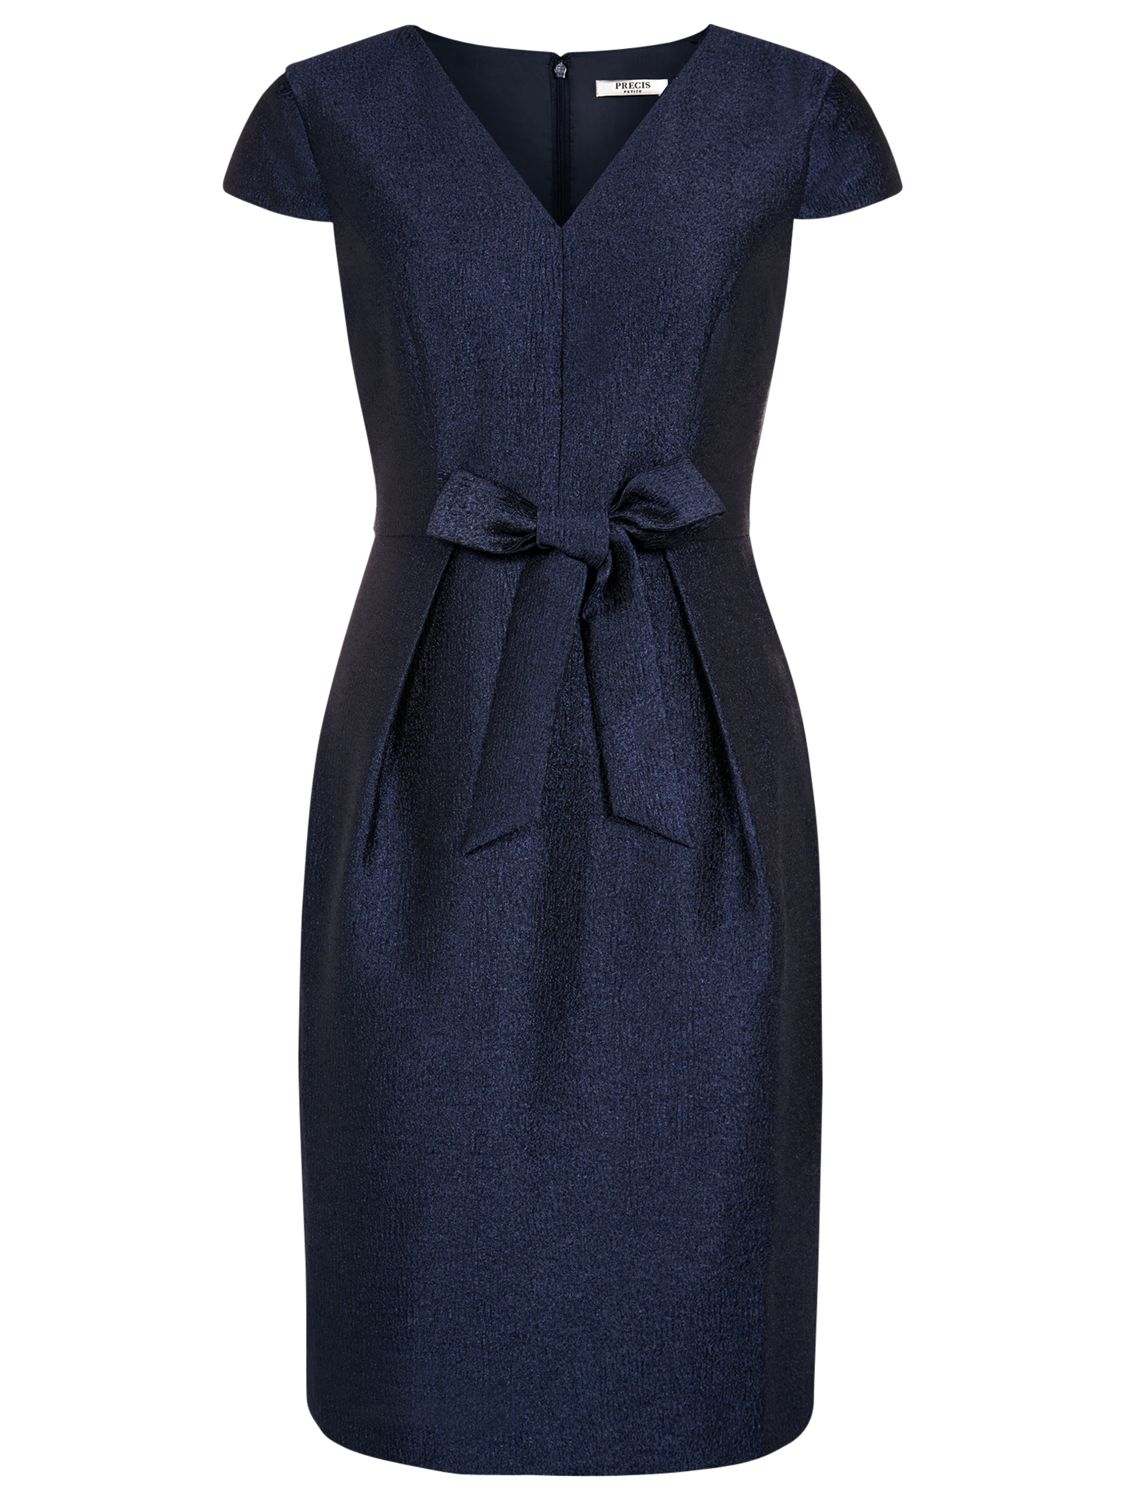 precis petite crinkle bow dress navy, precis, petite, crinkle, bow, dress, navy, precis petite, 16|8|18|14|12|10, clearance, womenswear offers, womens dresses offers, new years party offers, women, inactive womenswear, new reductions, womens dresses, special offers, 1769546